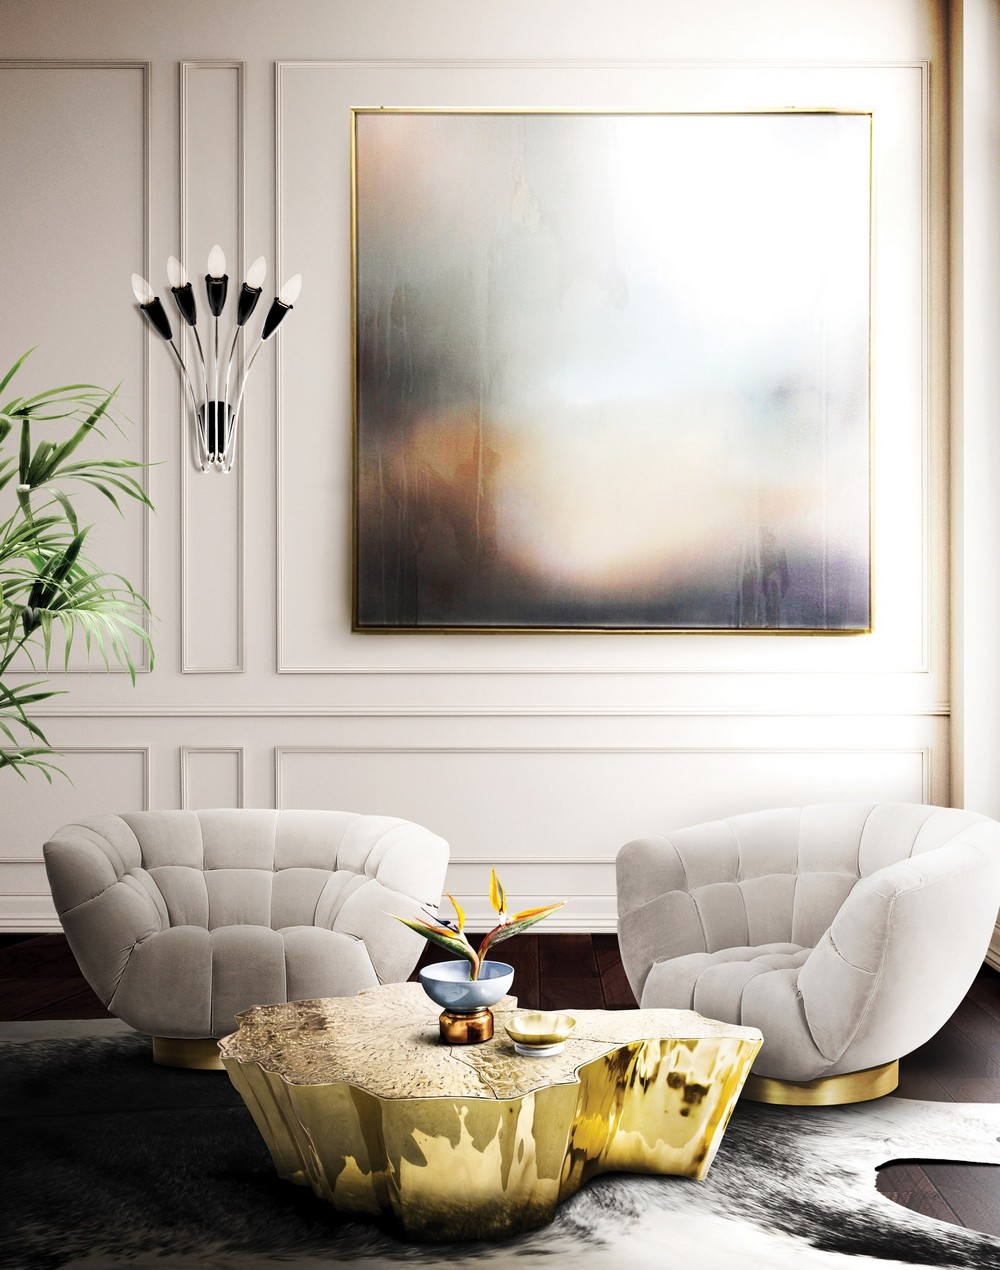 20 Modern Center Tables for a Comfortable and Luxurious Living Room 1 modern center tables 20 Modern Center Tables for a Comfortable and Luxurious Living Room 20 Modern Center Tables for a Comfortable and Luxurious Living Room 1